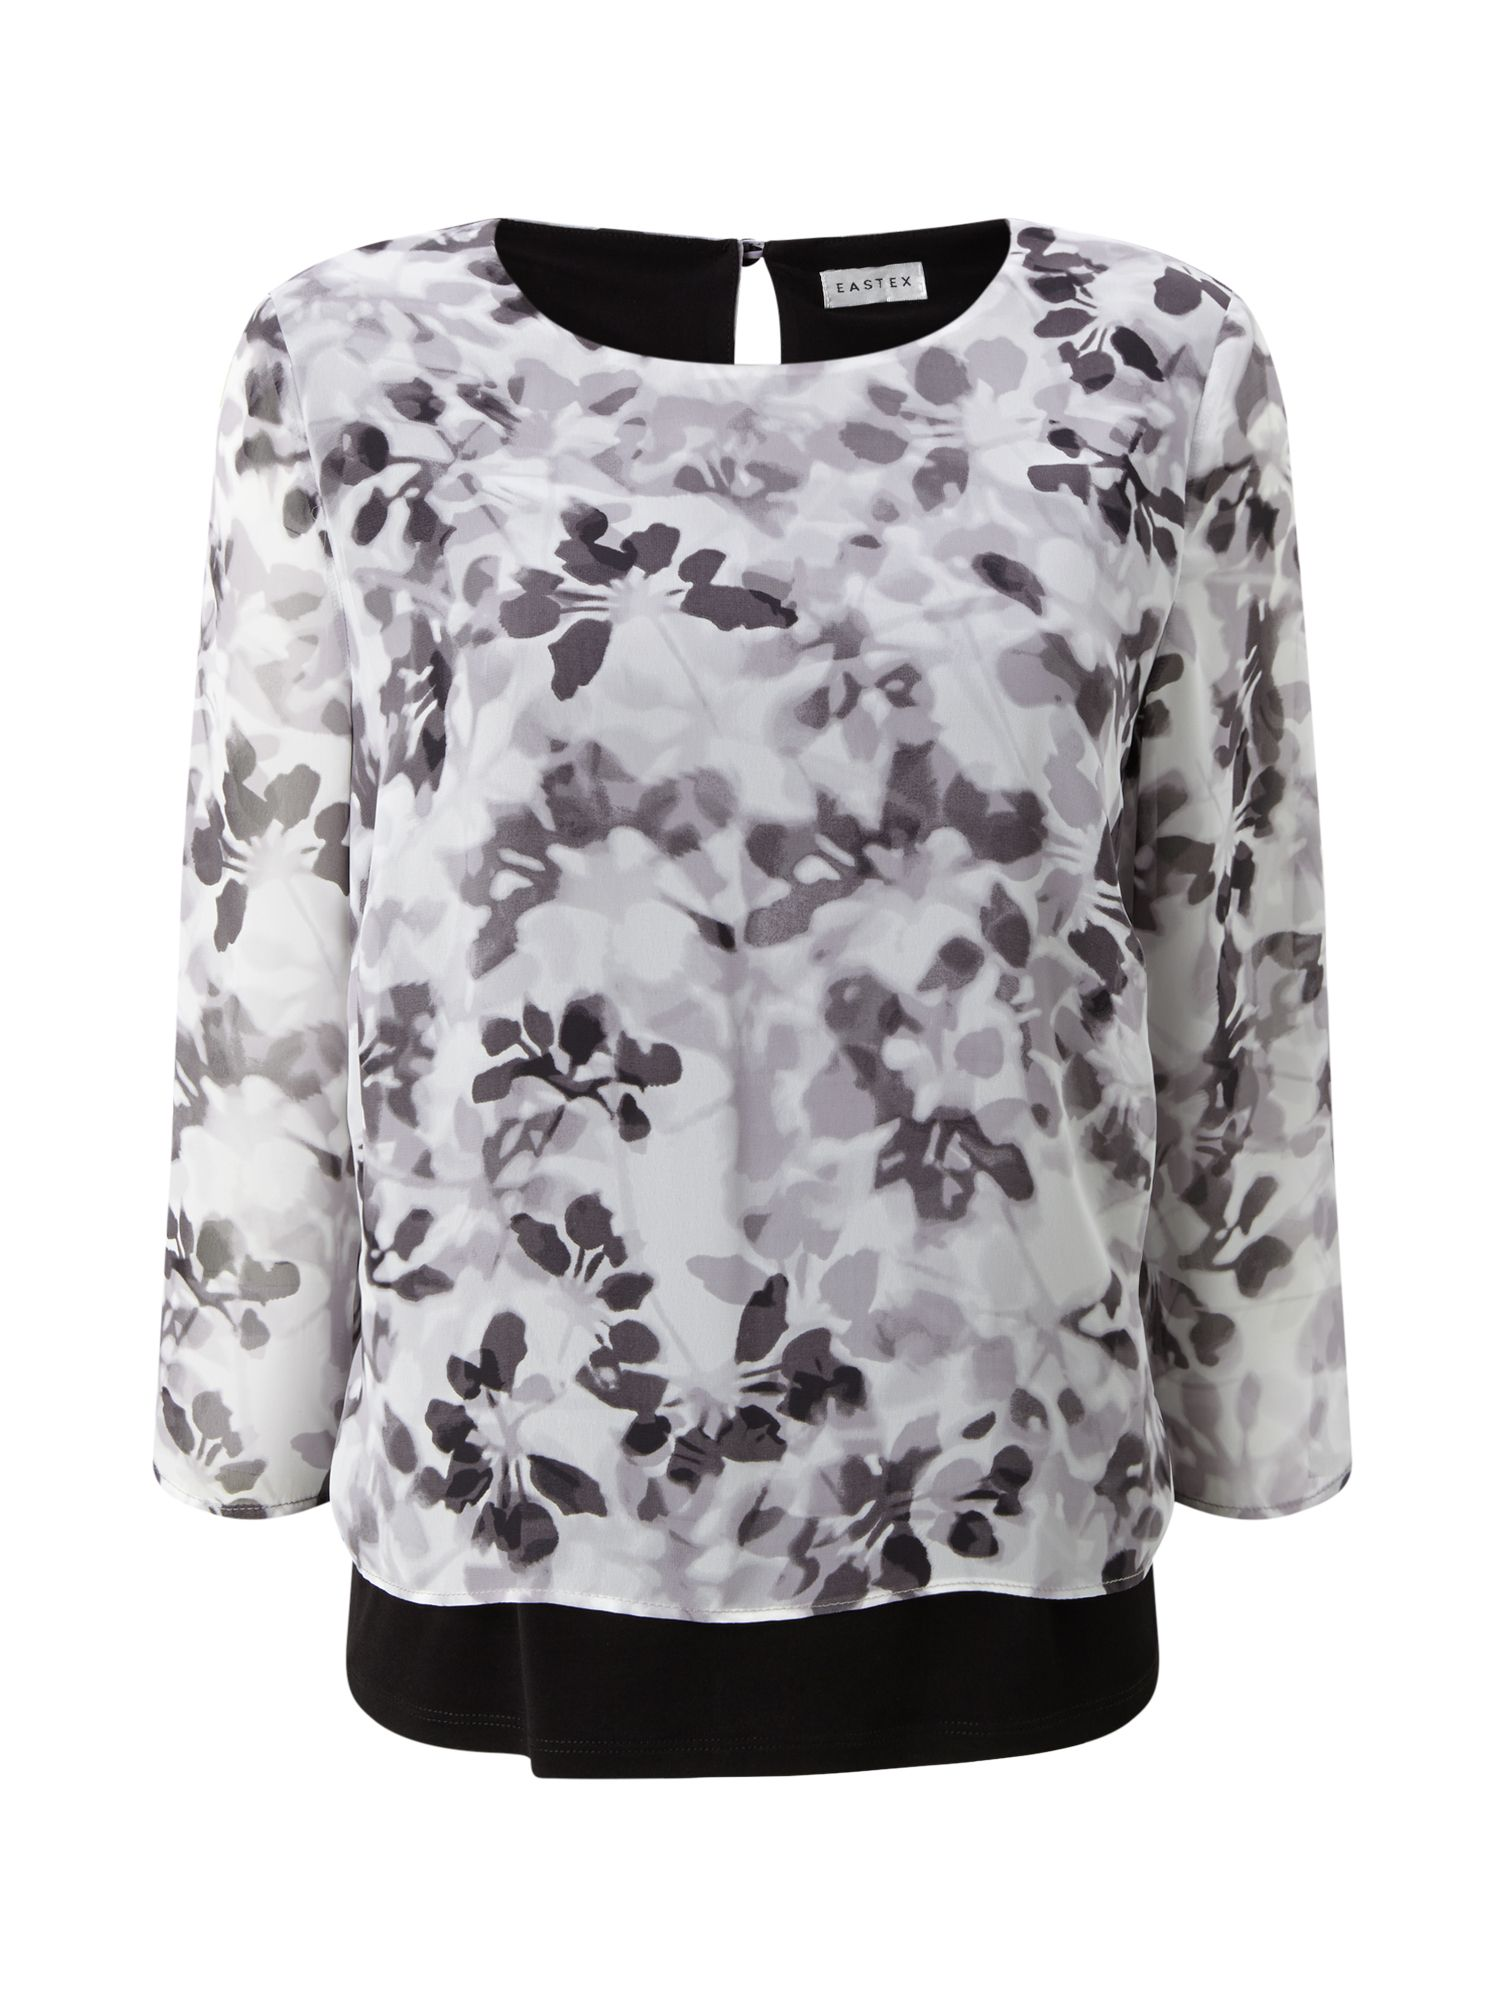 Eastex Eastex Printed Double Layer Blouse, Multi-Coloured